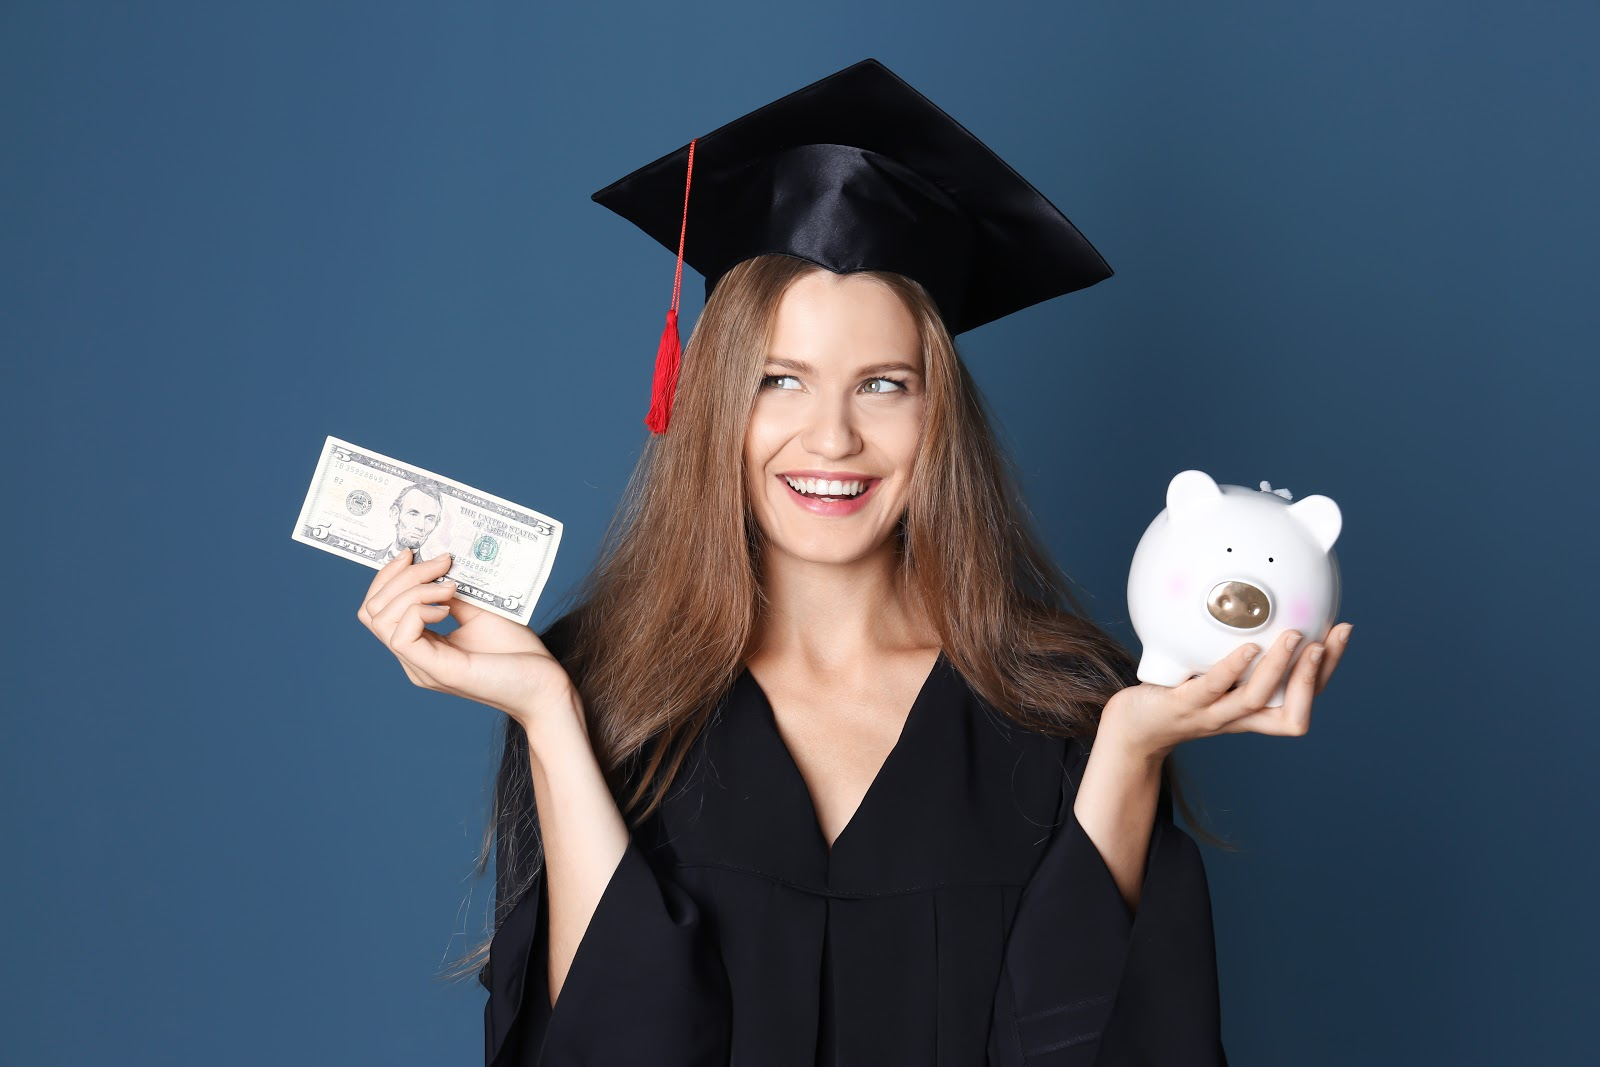 Young graduate with piggy bank hoping for debt forgiveness